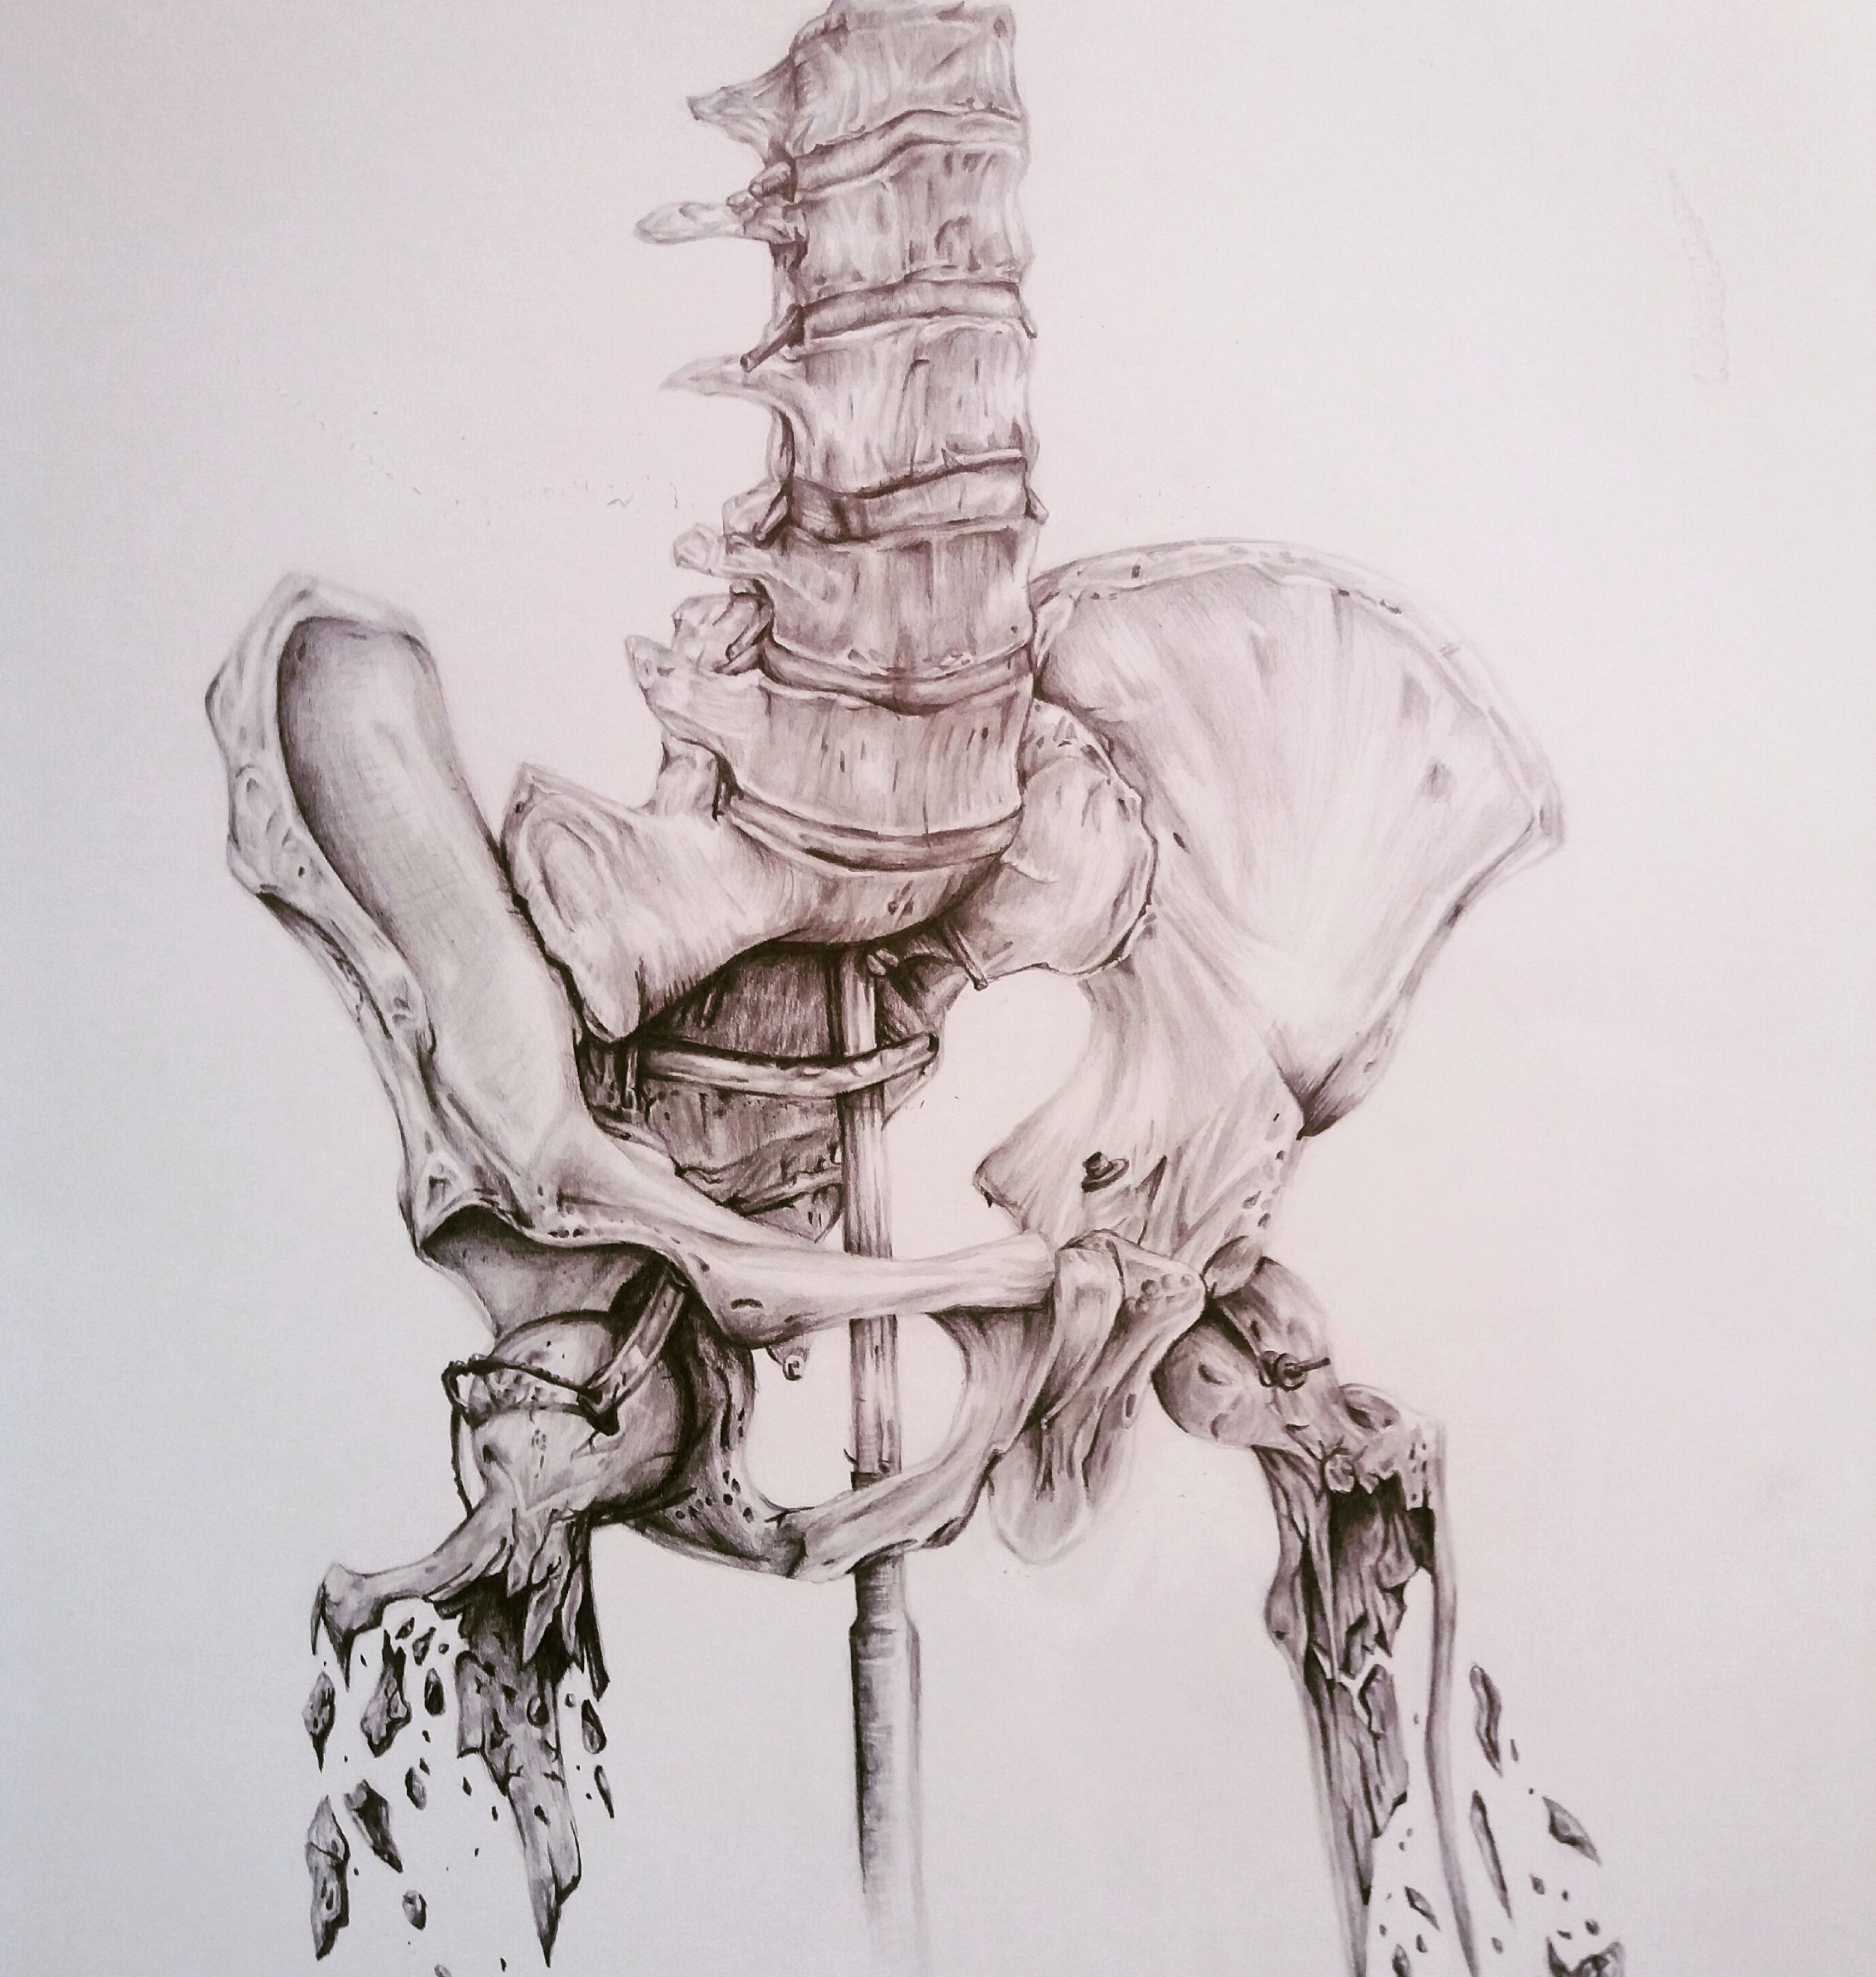 anatomy pencil drawing anatomy humanbody art pencildrawing